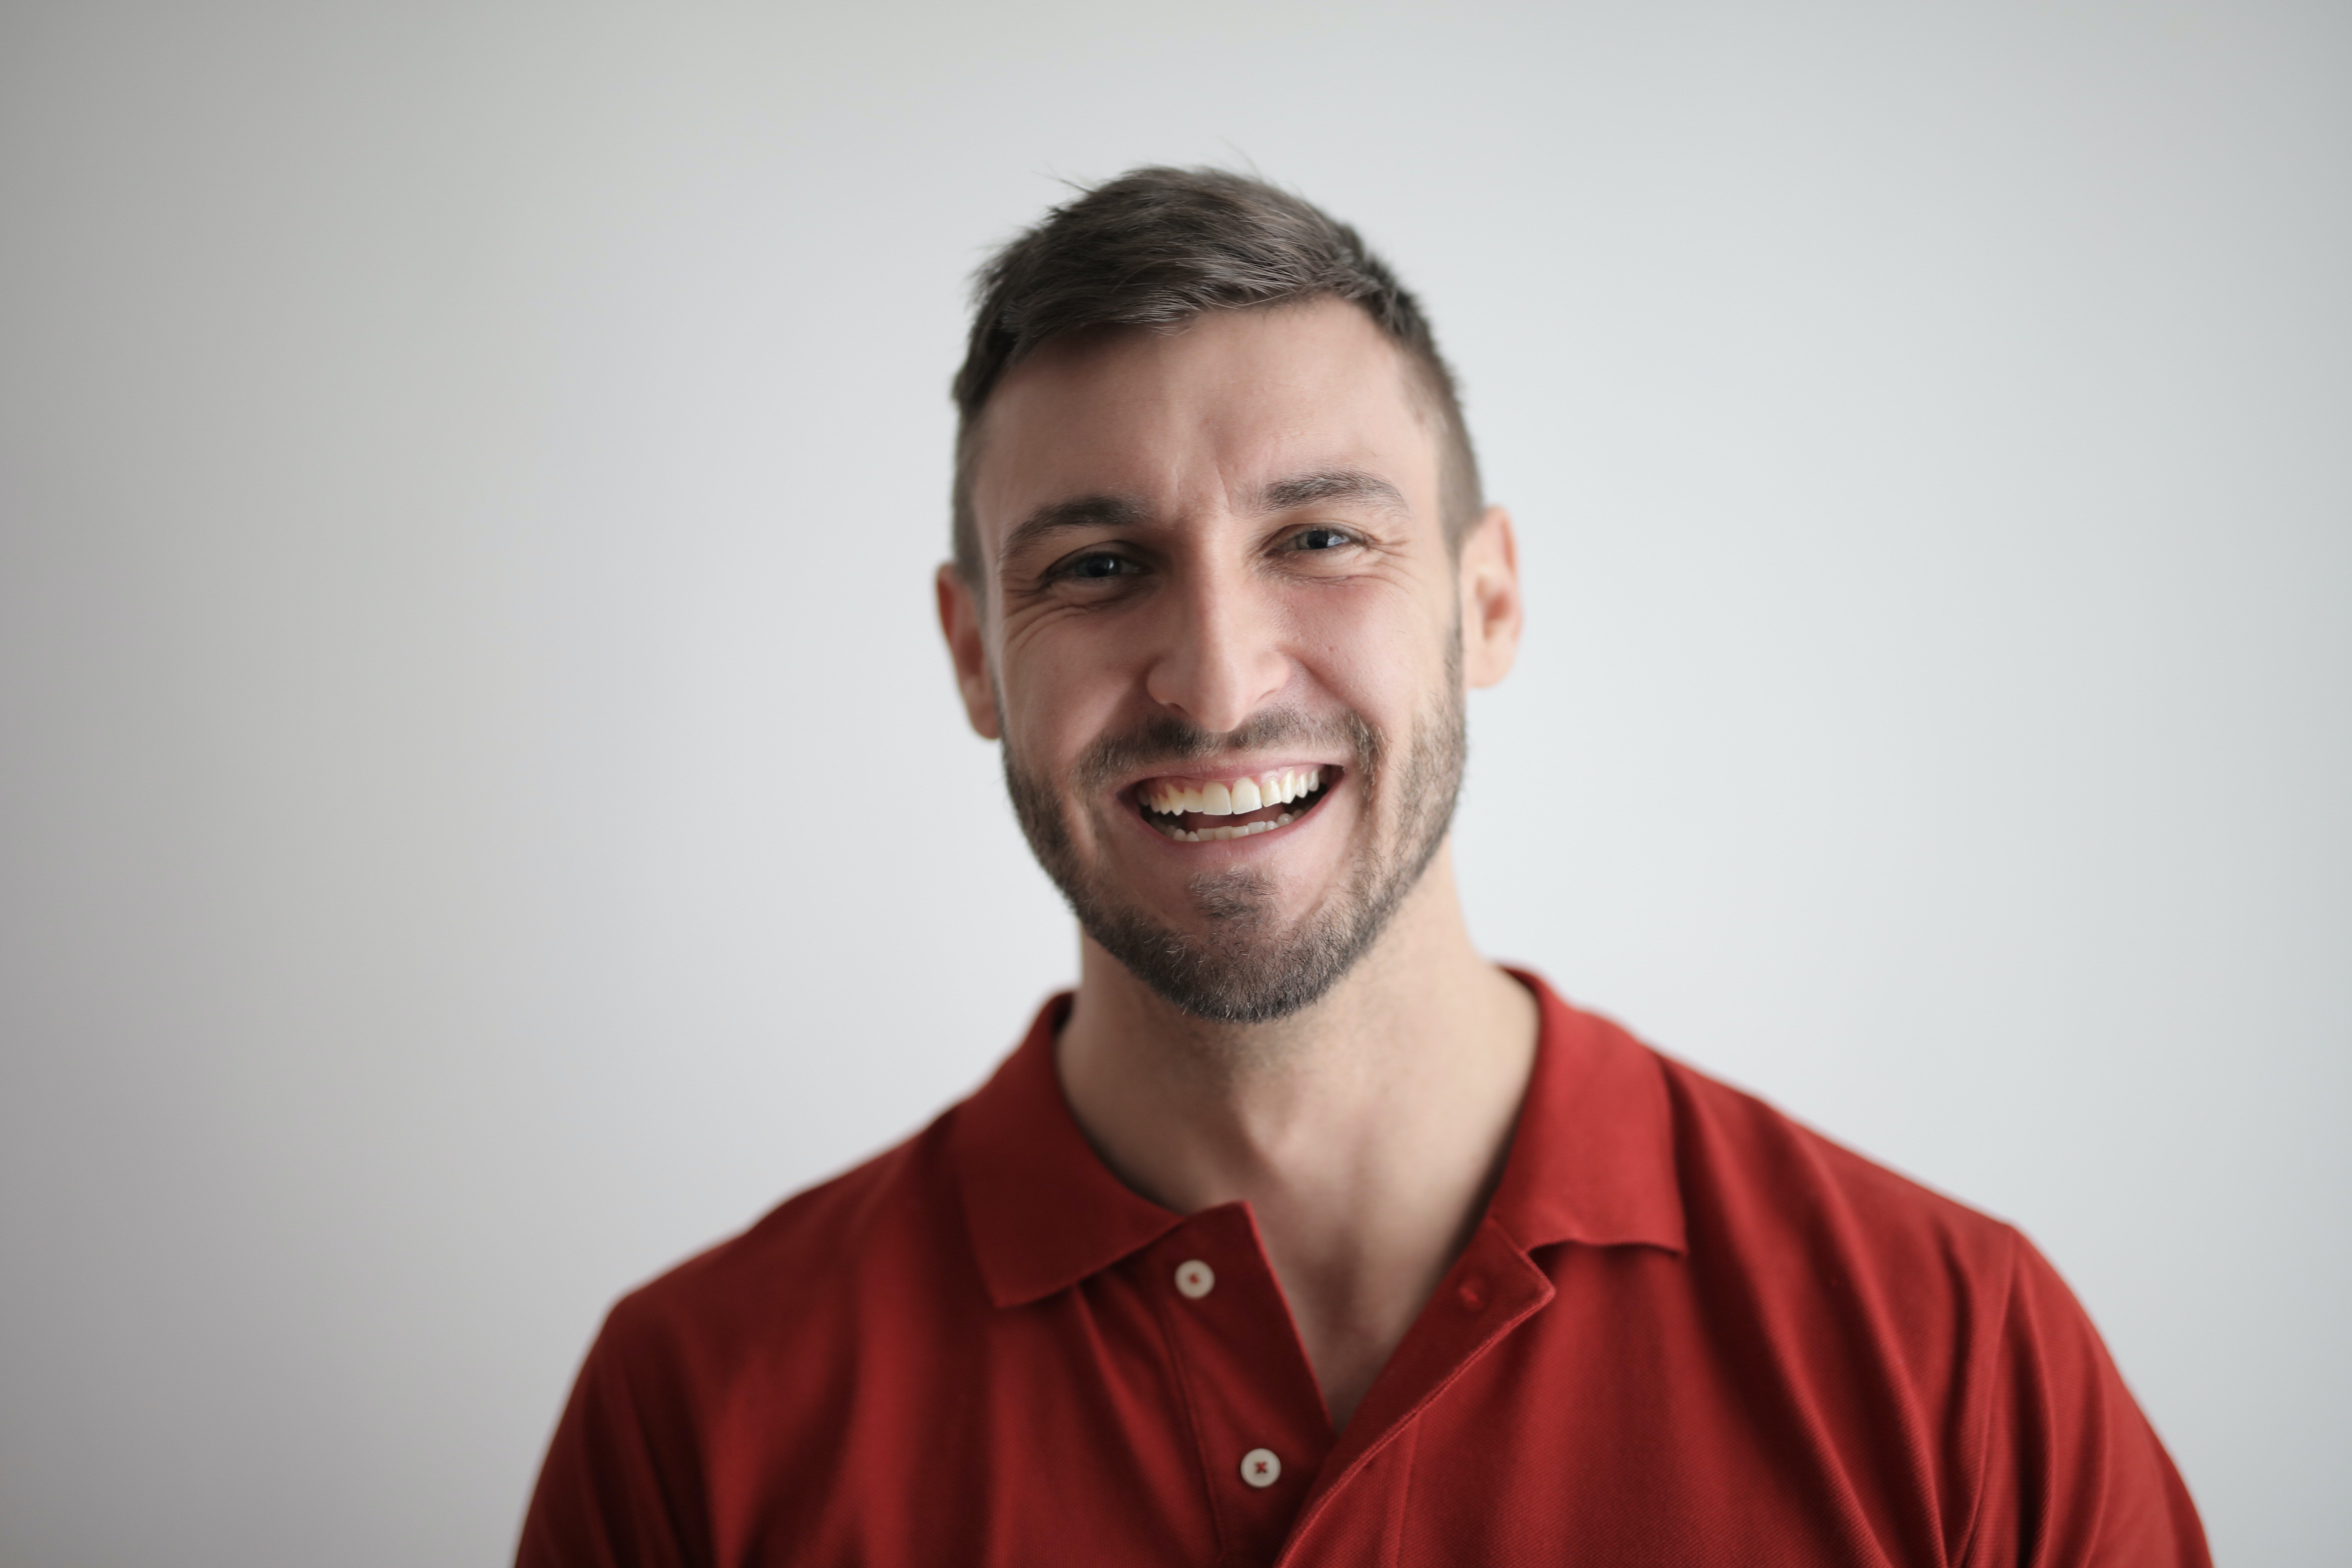 Man in a red button-up shirt smiling   Photo: Pexels